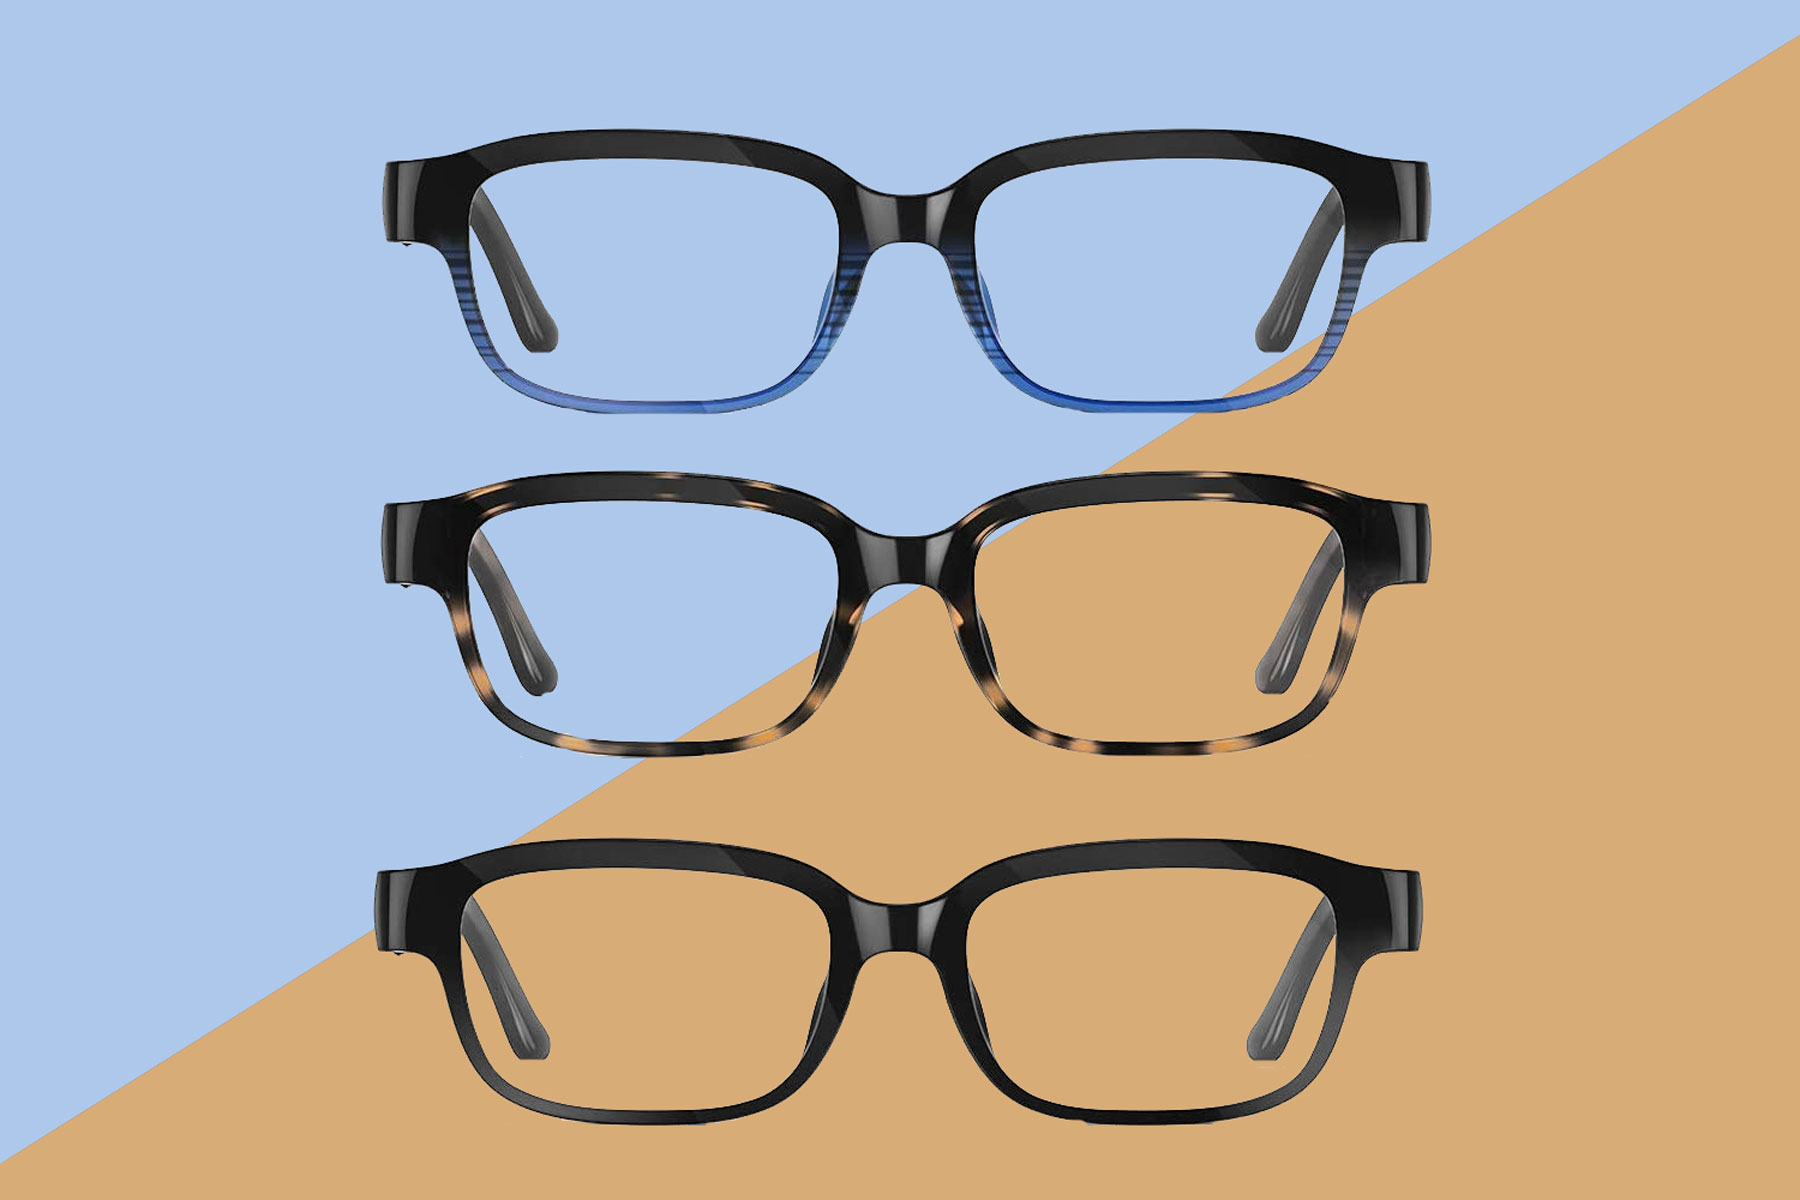 Three pairs of rectangular-shaped eyeglasses